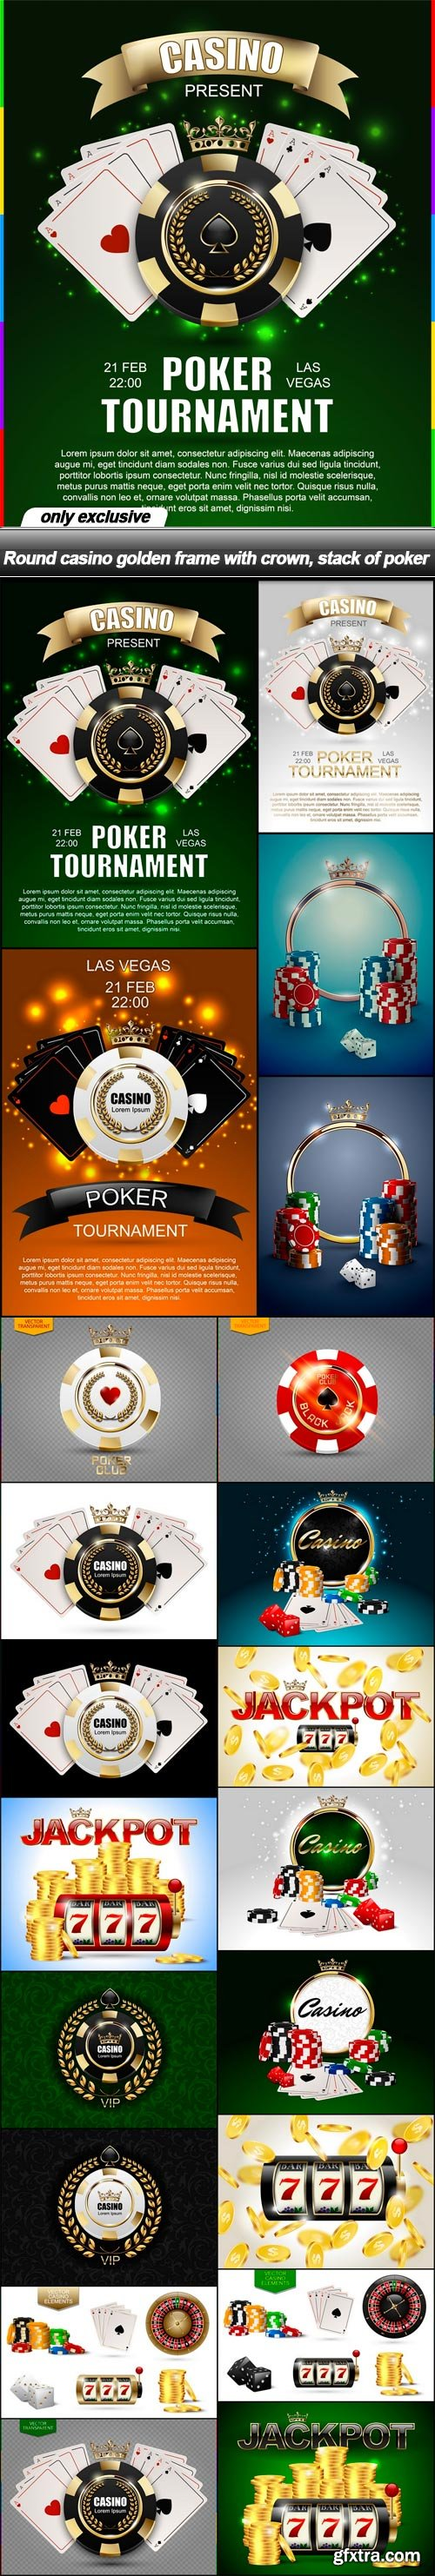 Round casino golden frame with crown, stack of poker - 21 EPS